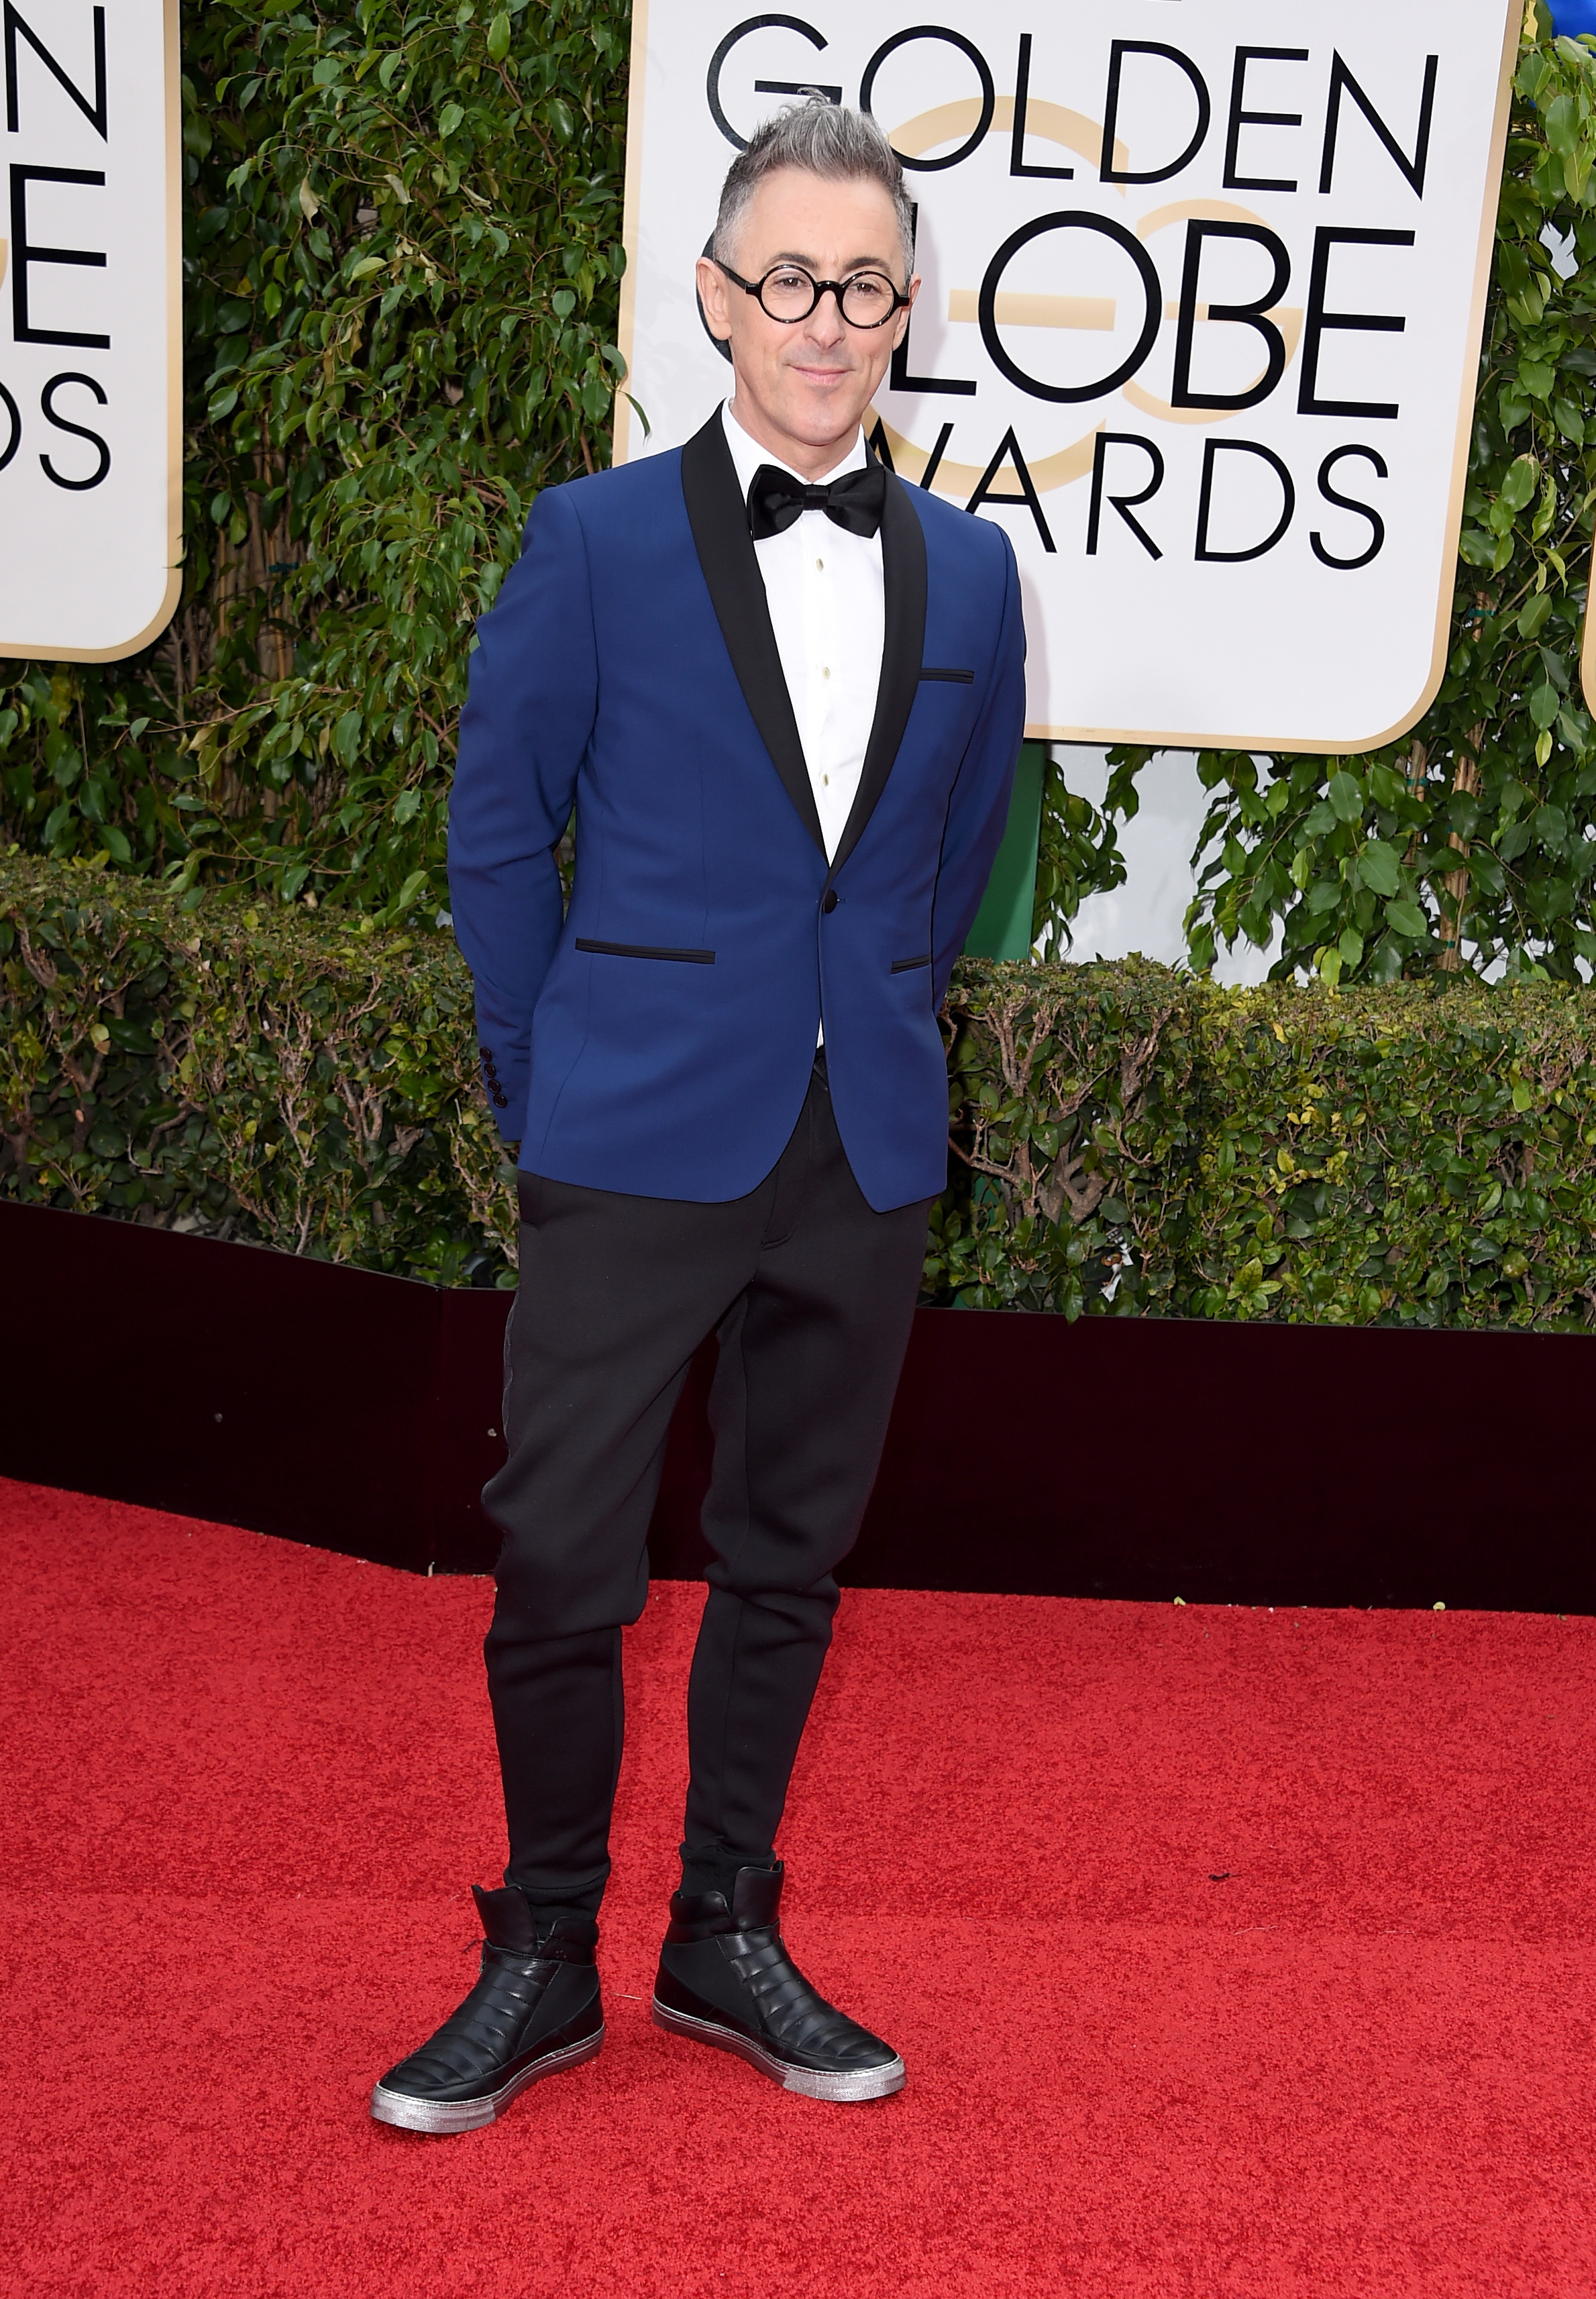 Alan Cumming arrives to the 73rd Annual Golden Globe Awards on Jan. 10, 2016 in Beverly Hills.